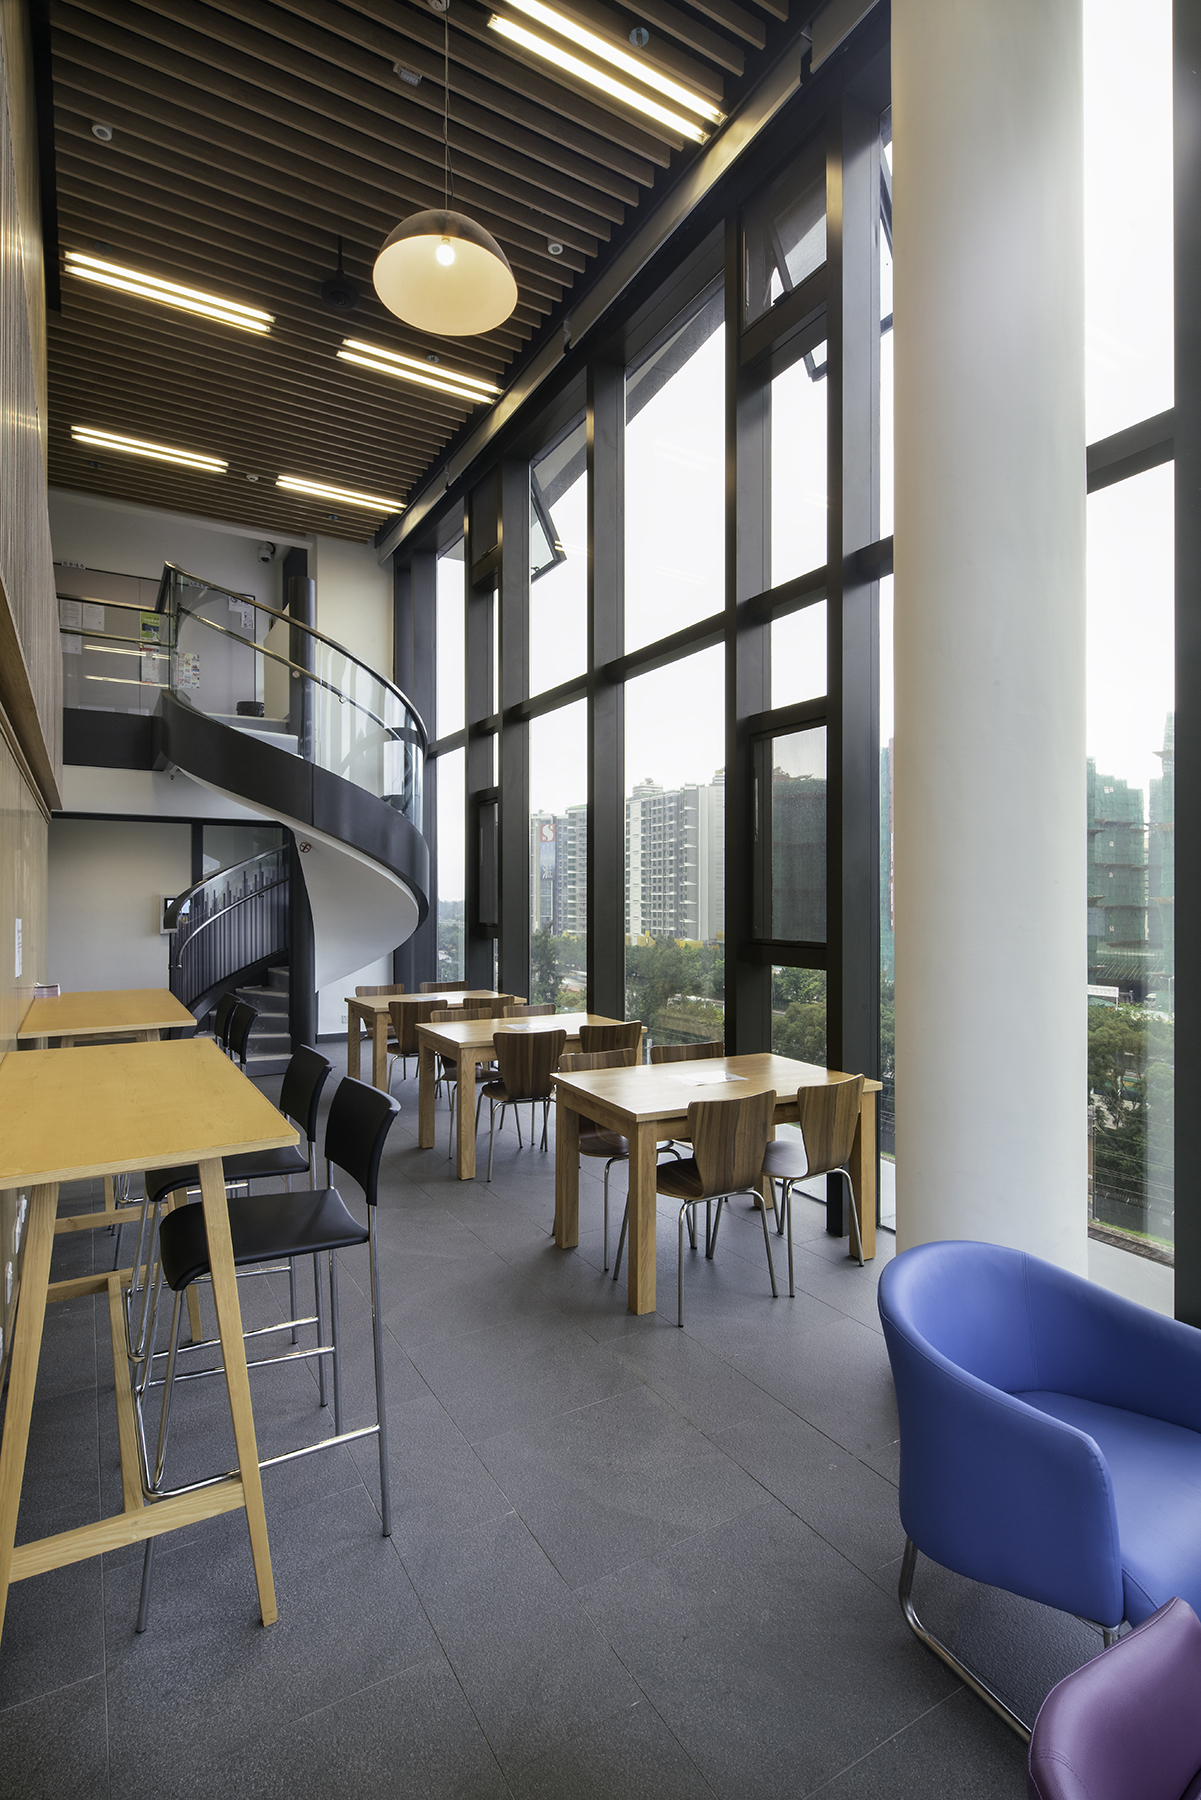 STUDENT HOSTELS IN AREA 39